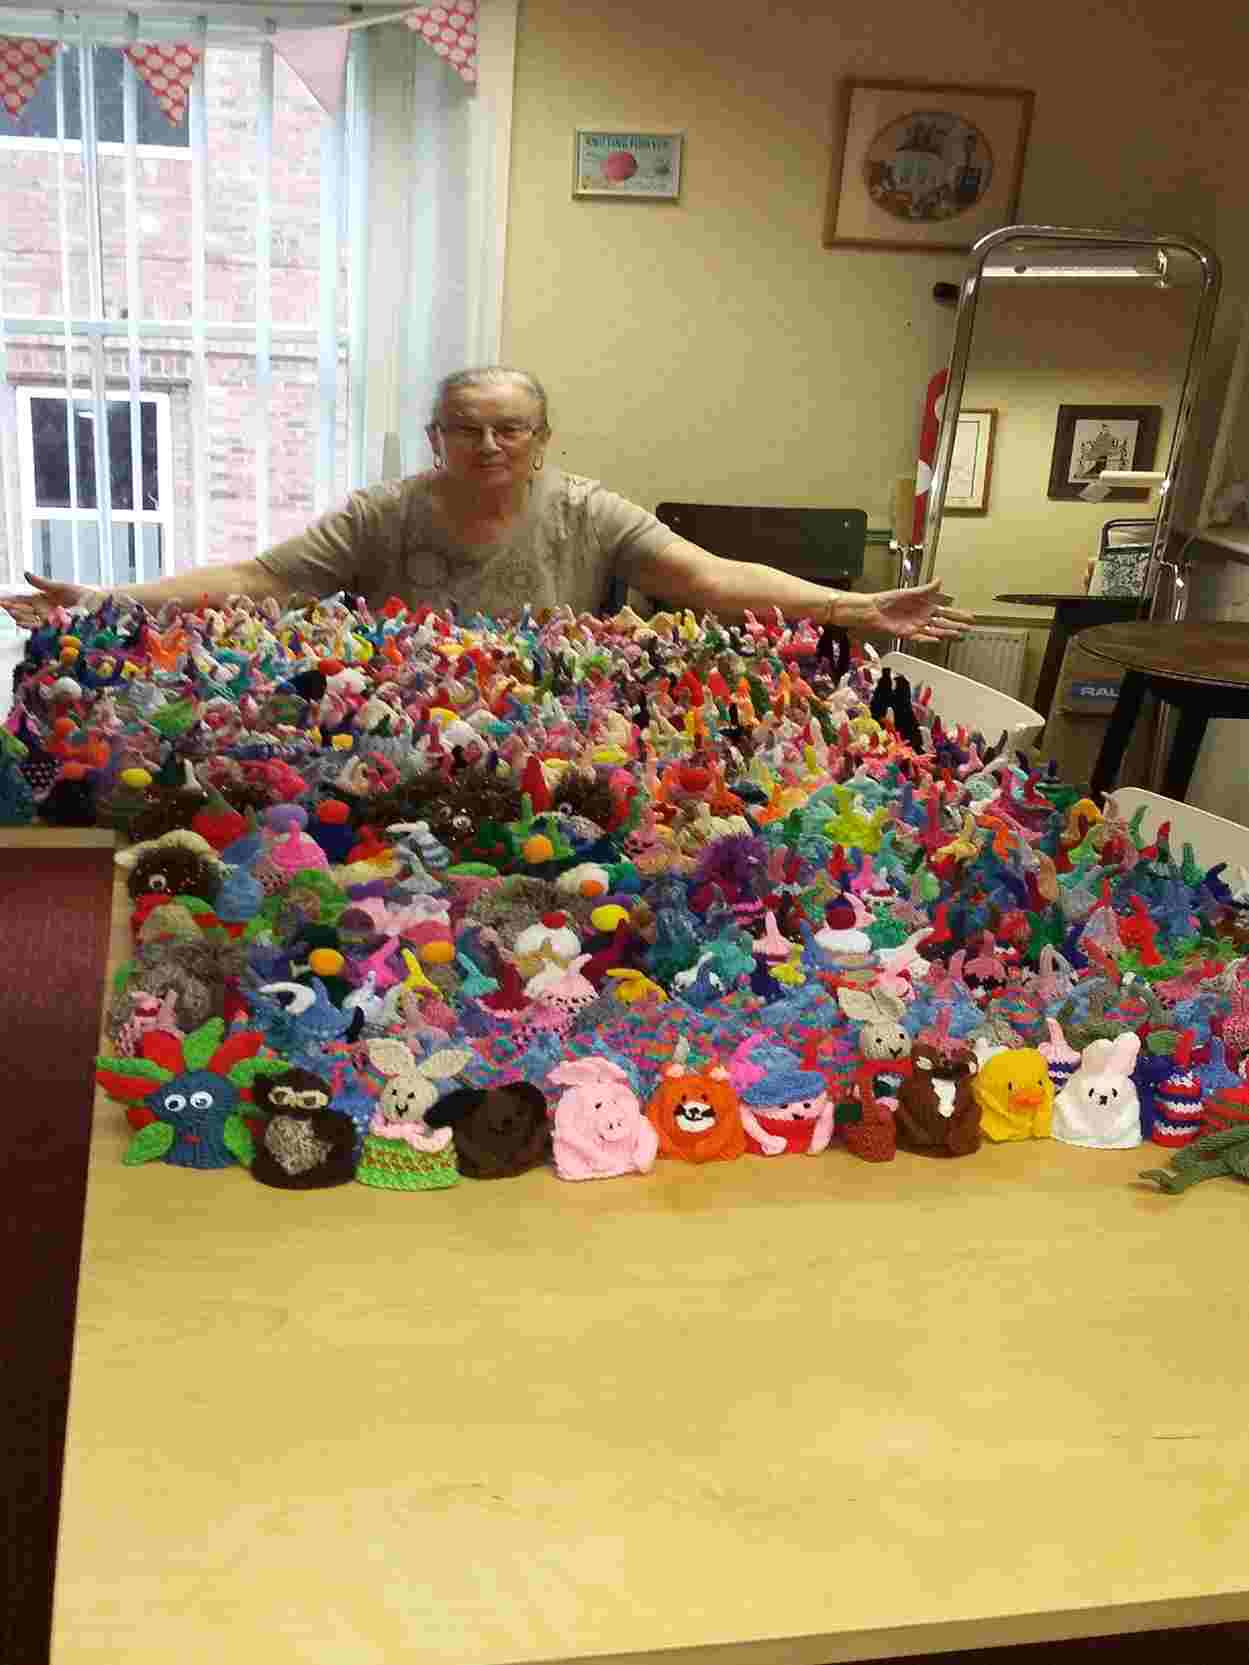 Over one thousand smoothie hats knitted by M&G Designs knitters for charity age uk